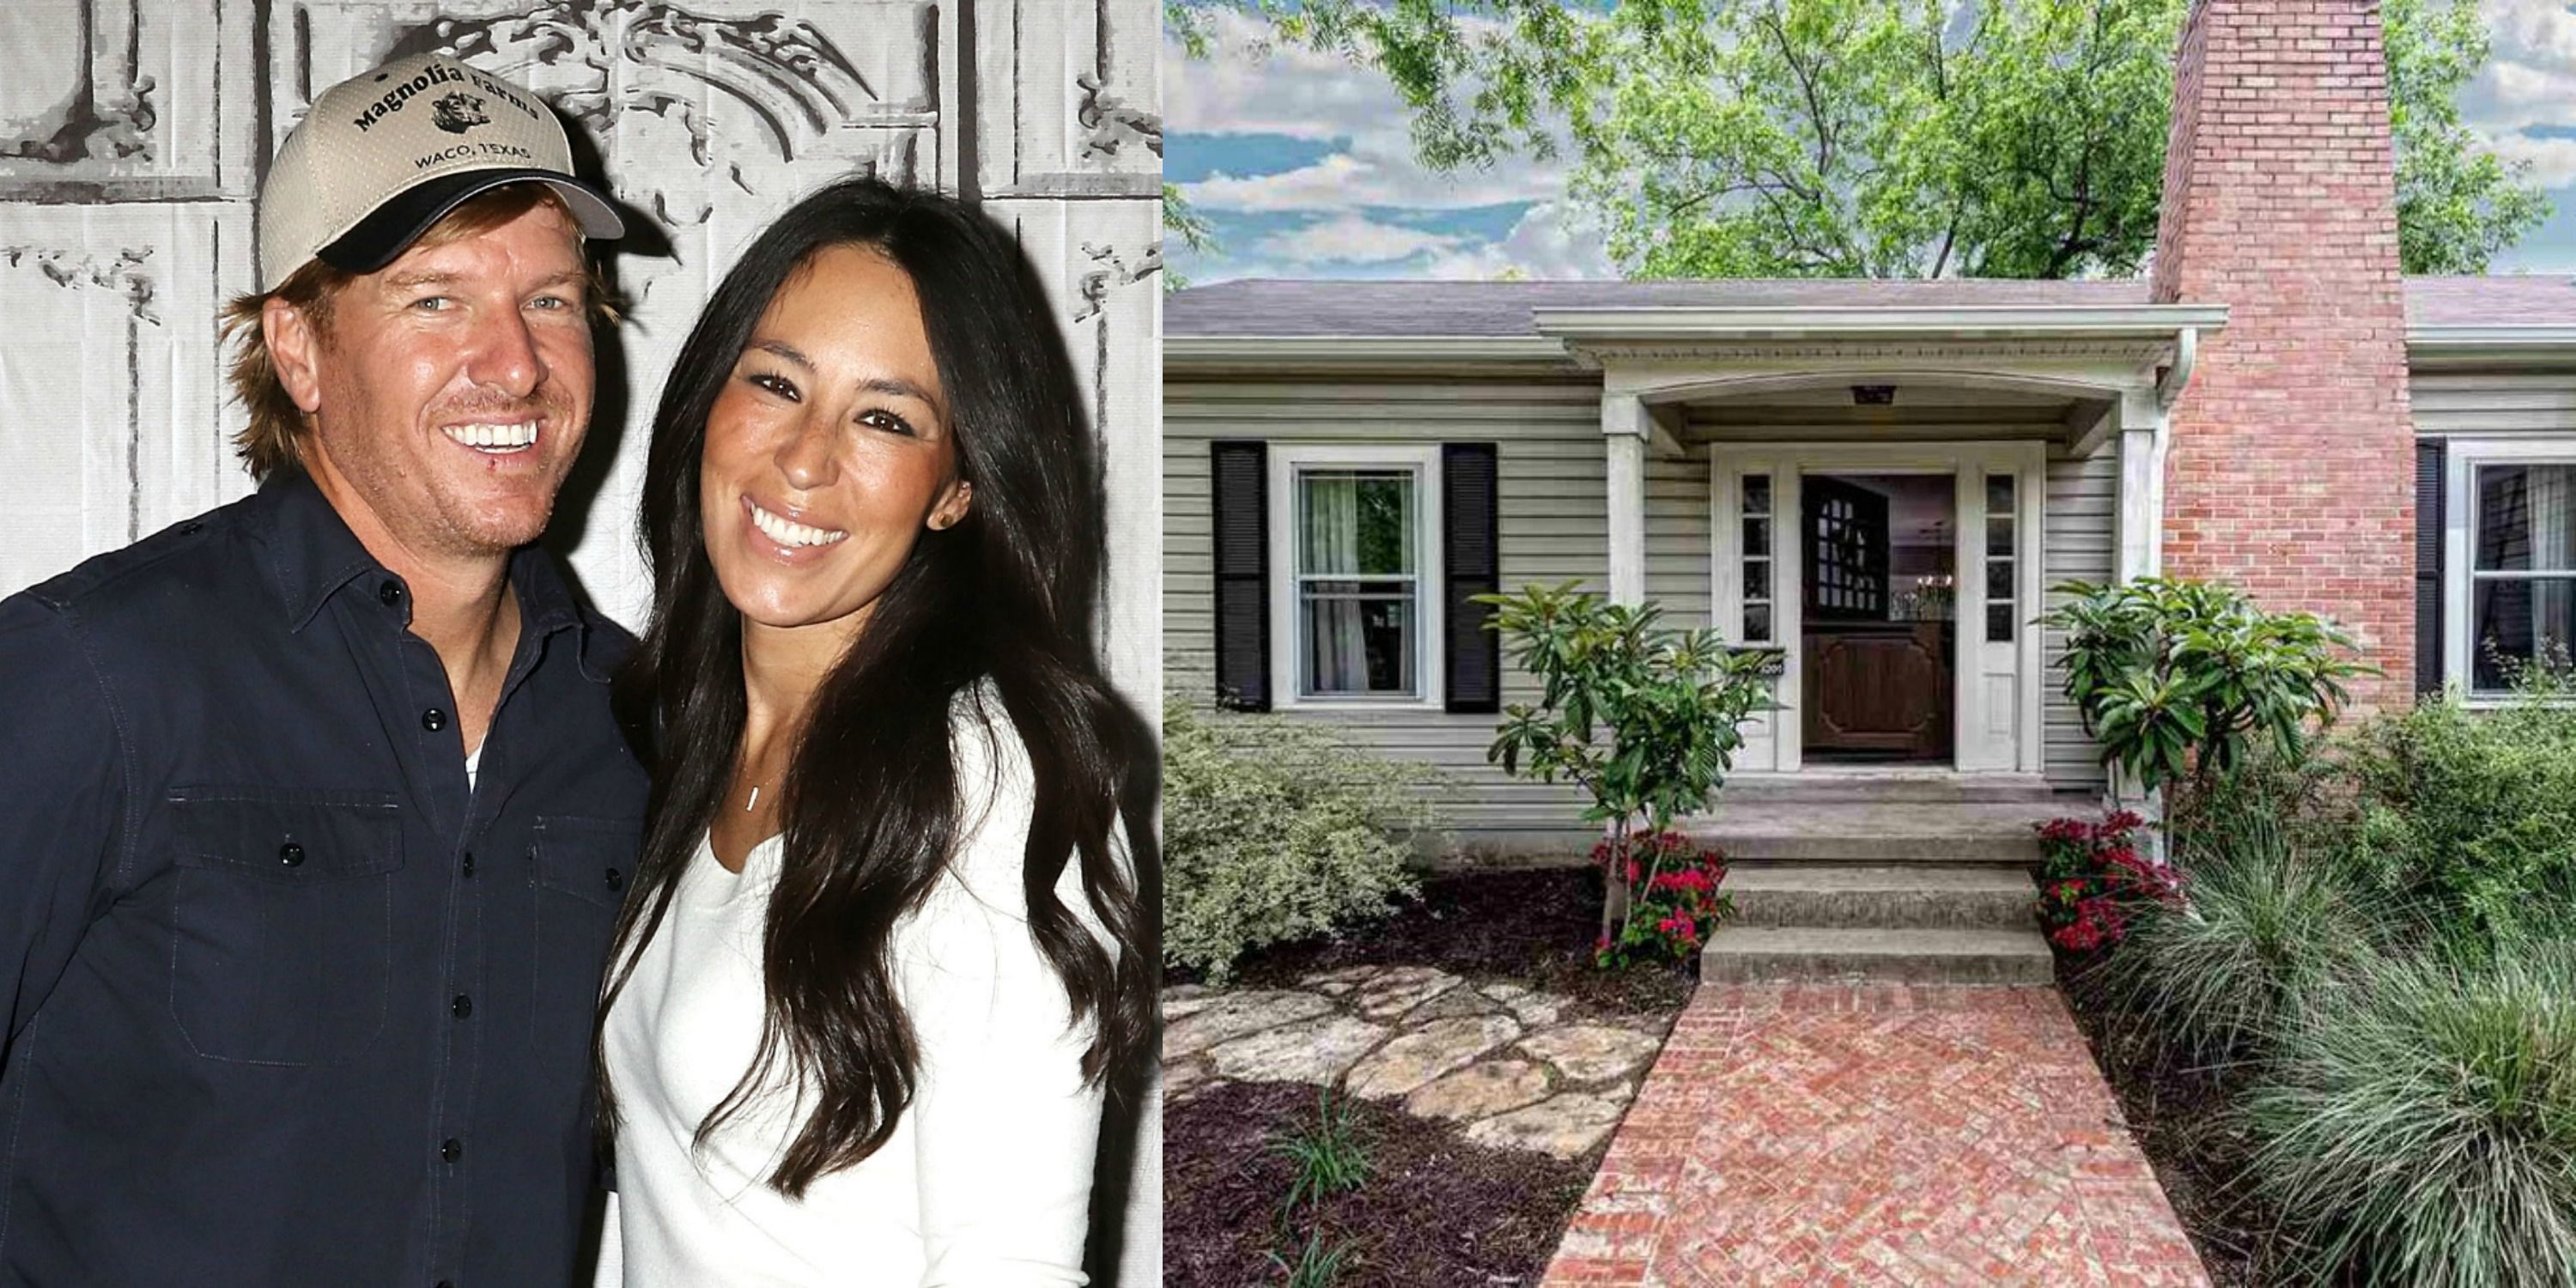 Fixer Upper House for Sale - Chip and Joanna House on Market